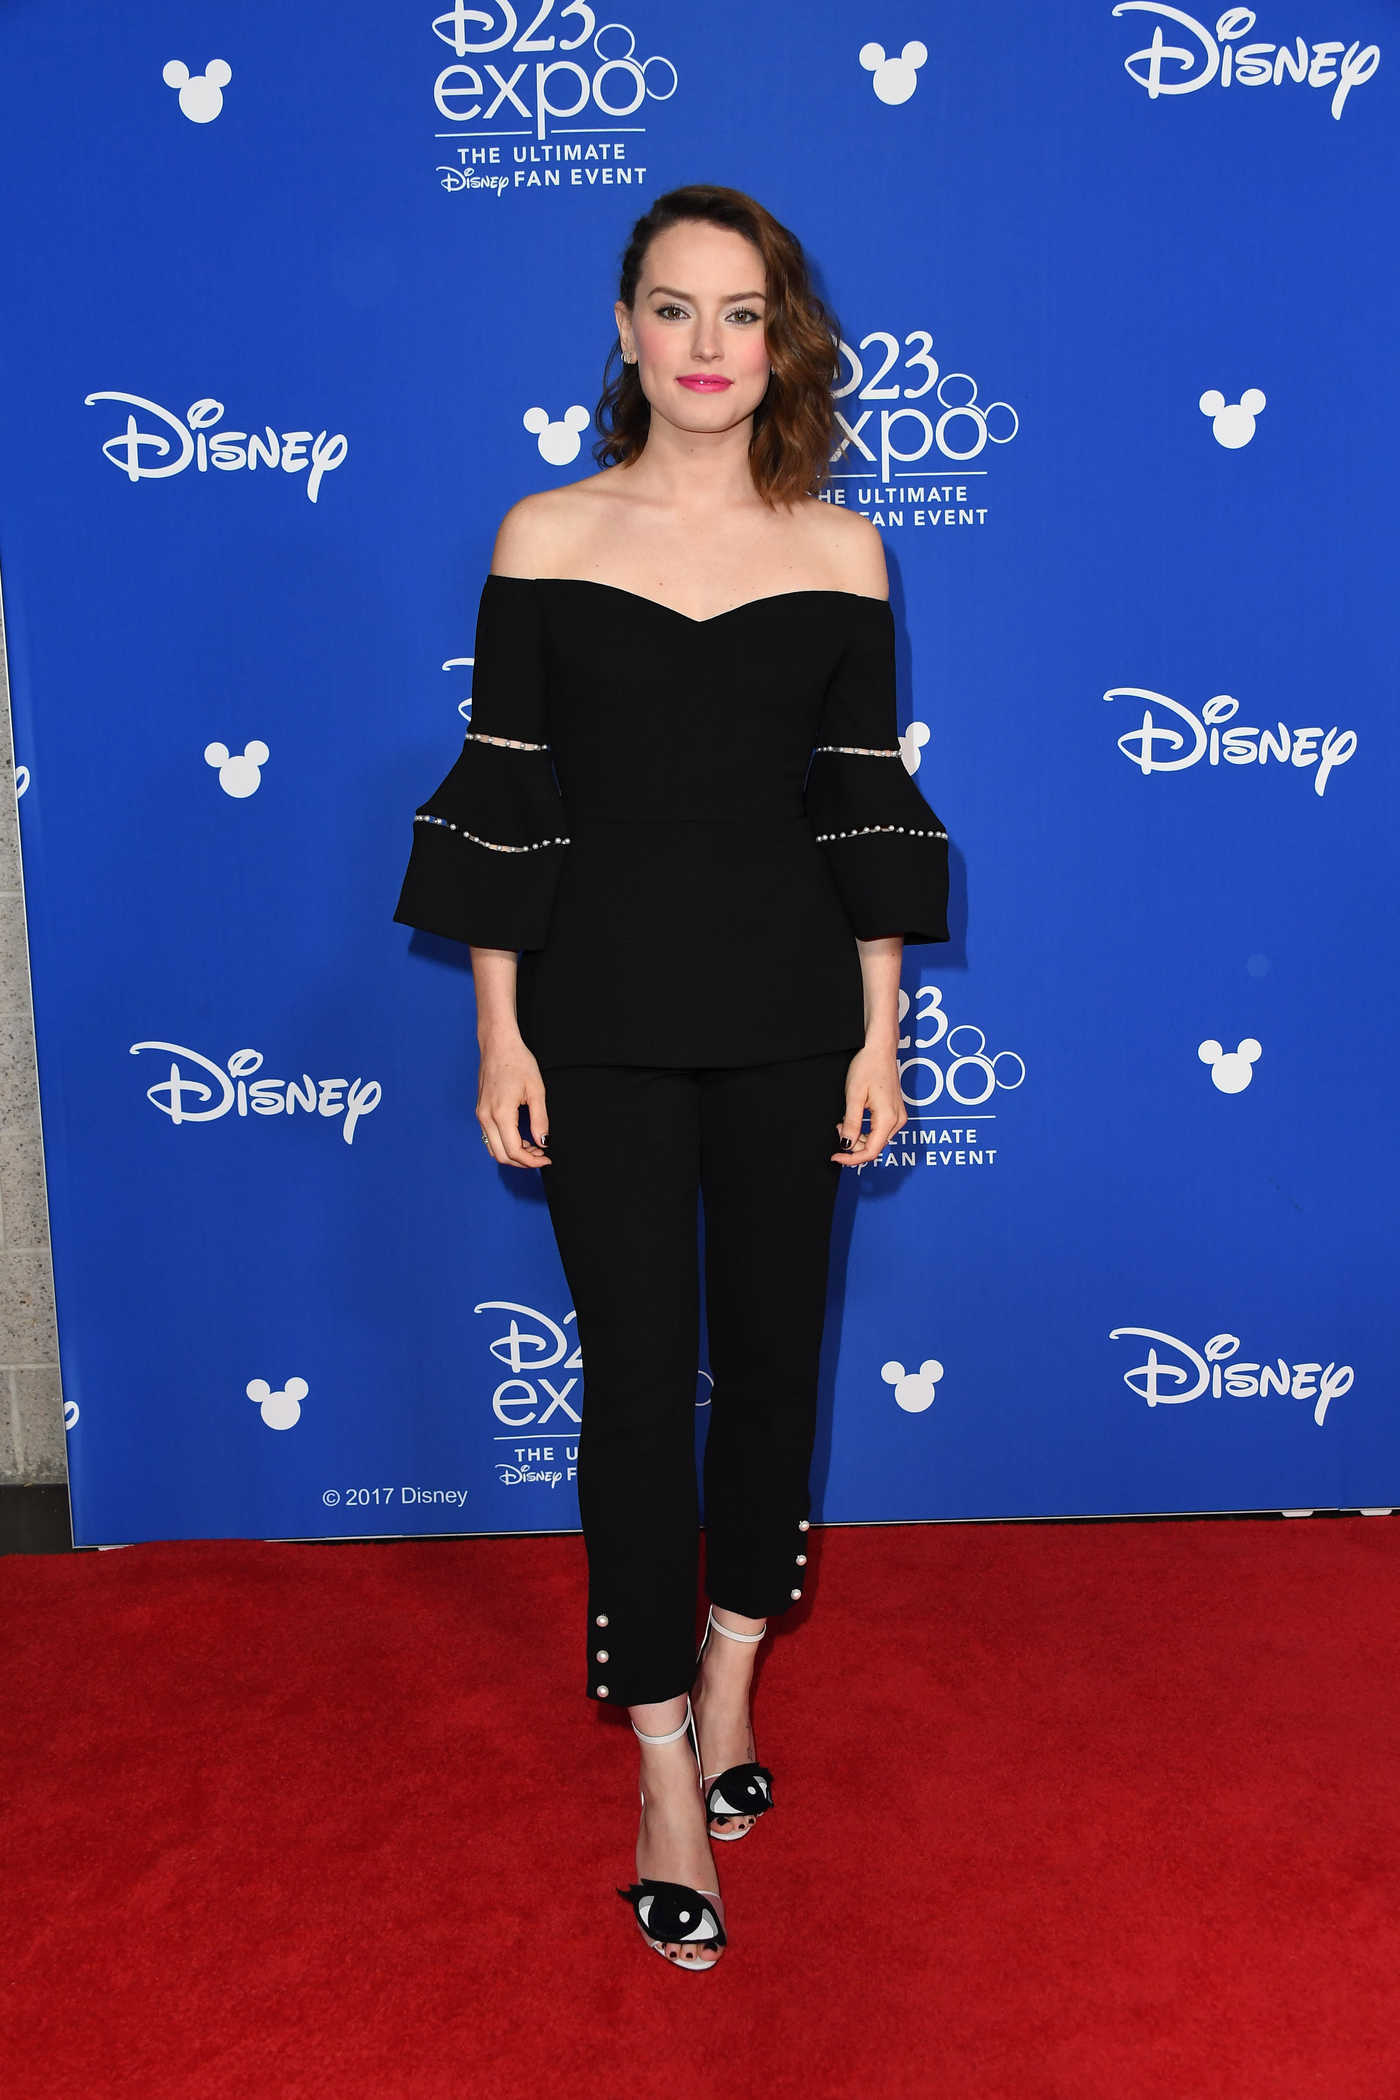 Daisy Ridley at the 2017 Disney D23 Expo in Anaheim 07/15/2017